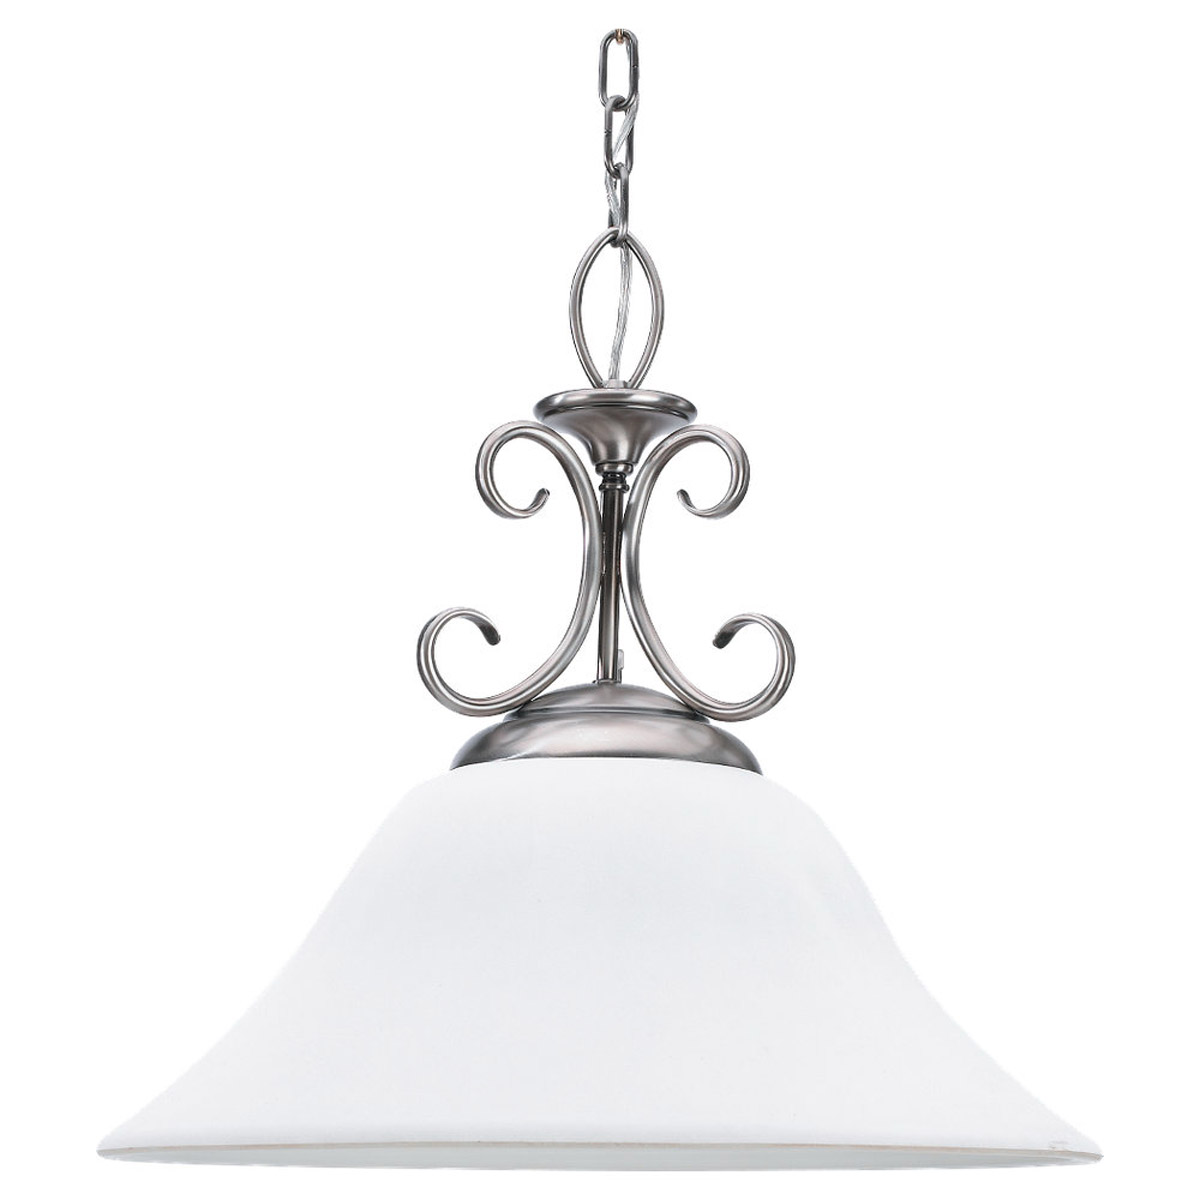 Sea Gull Lighting Montclaire 1 Light Pendant in Antique Brushed Nickel 65105-965